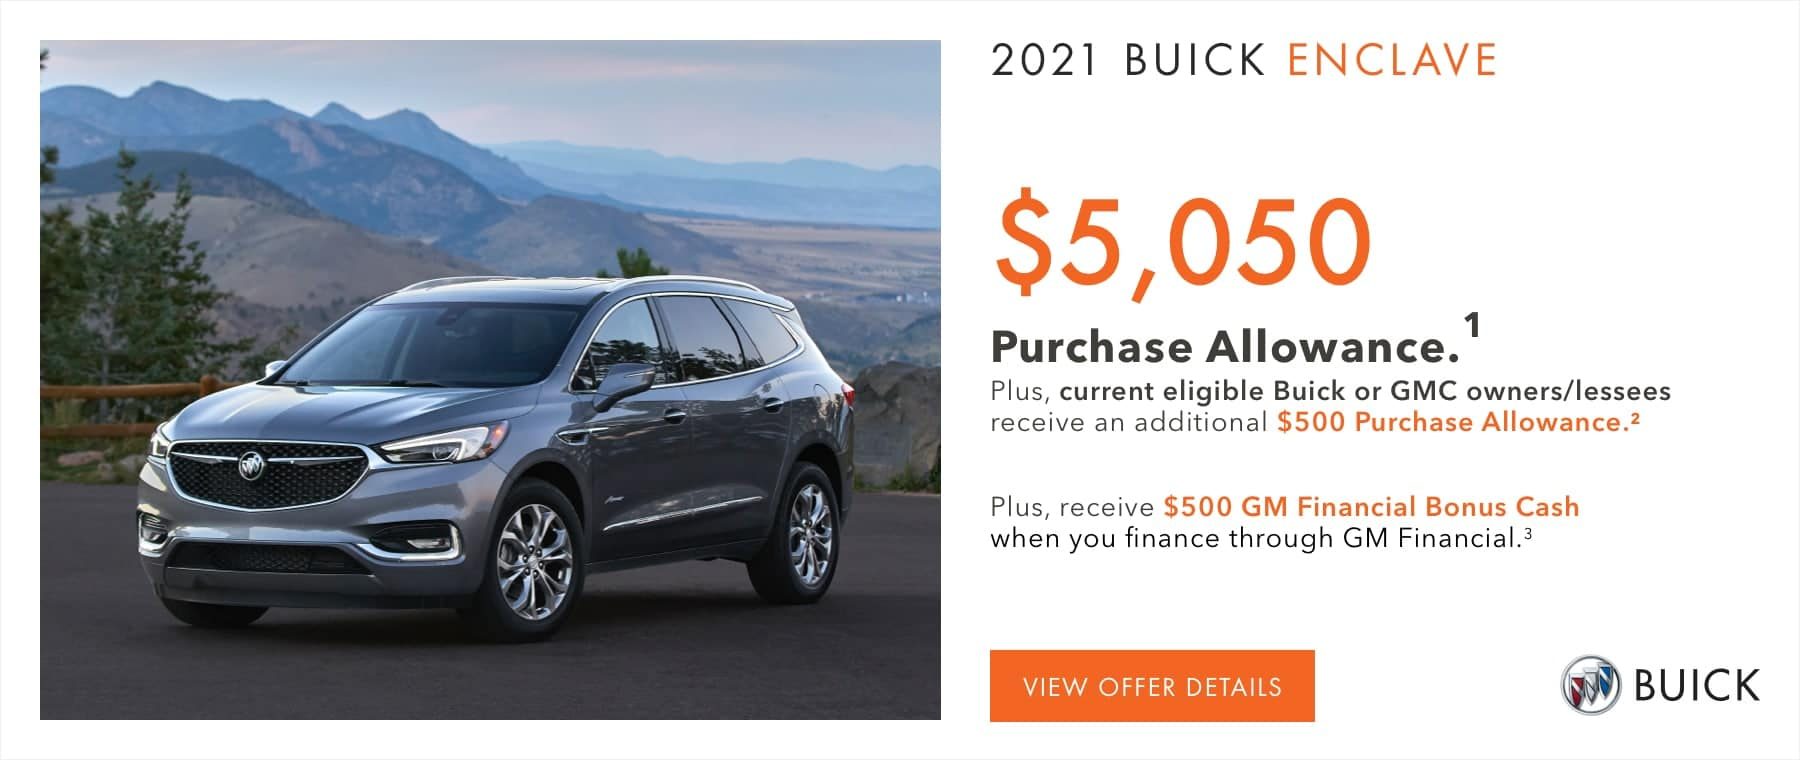 $5,050 Purchase Allowance.1 Plus, current eligible Buick or GMC owners/lessees receive an additional $500 Purchase Allowance.2 Plus, receive $500 GM Financial Bonus Cash when you finance through GM Financial.3